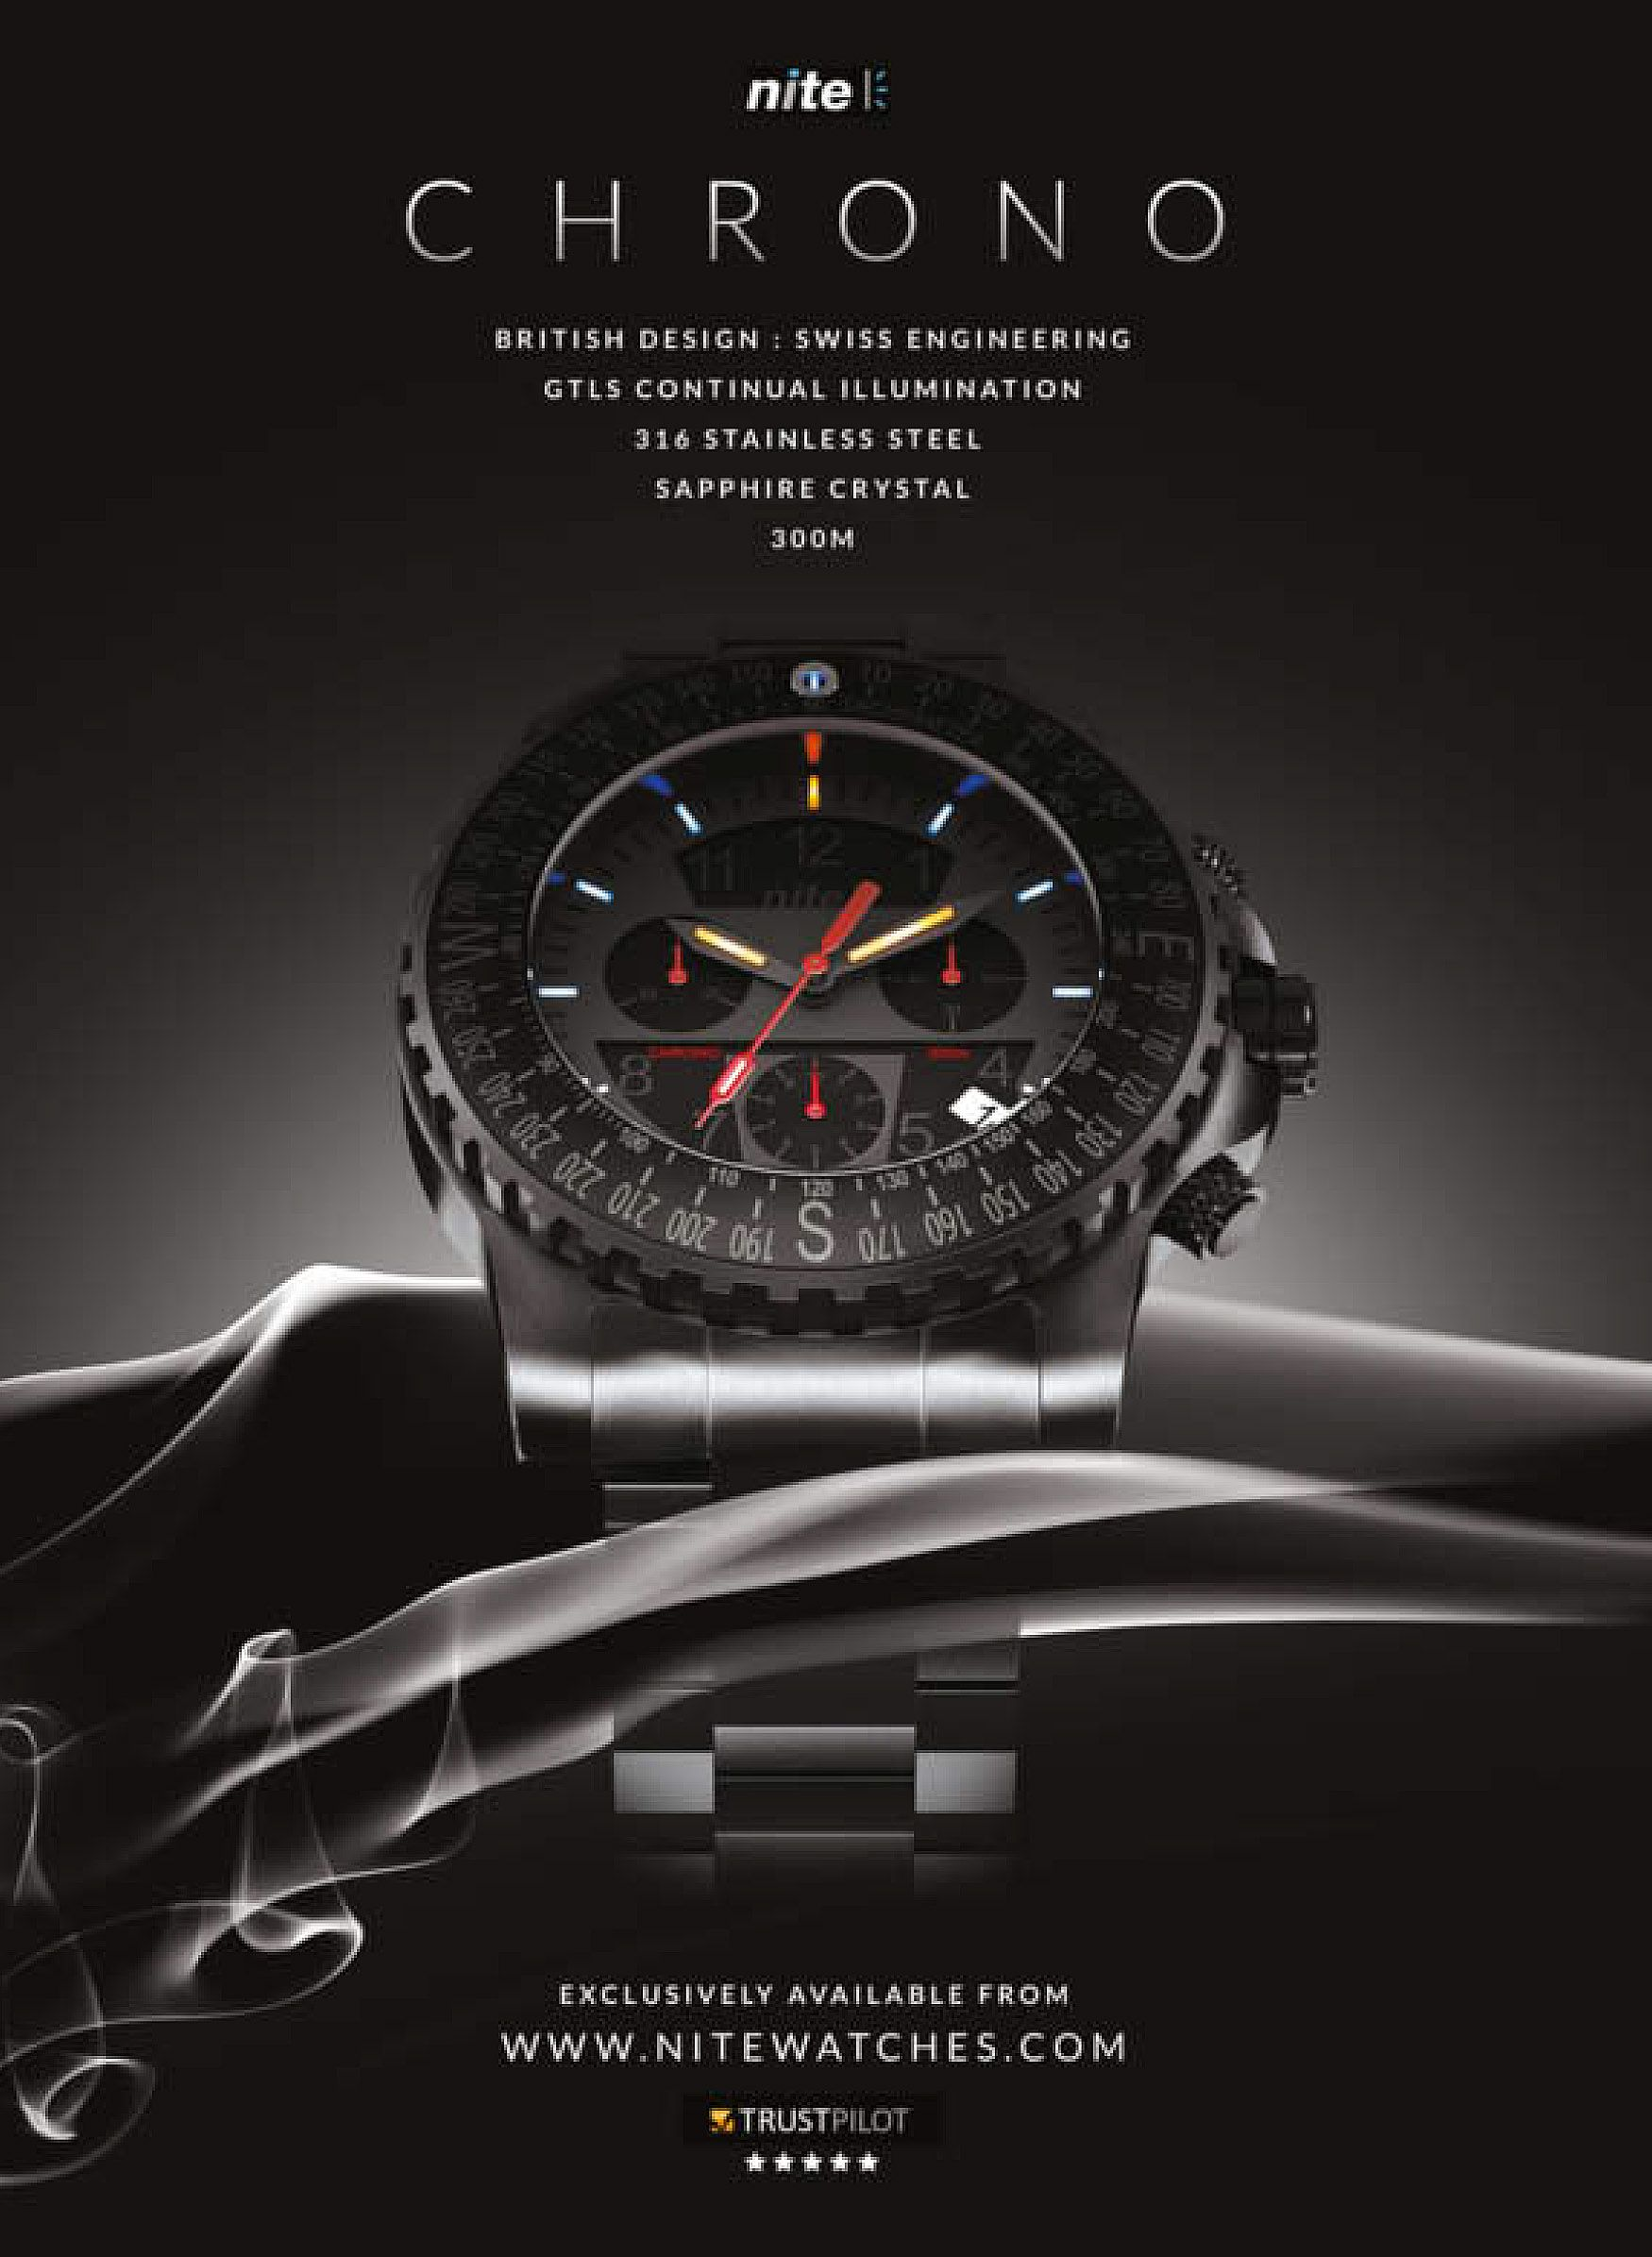 Pin By Fangling Chua On Watches Advertisement Watch Design Photo Design Advertising Design